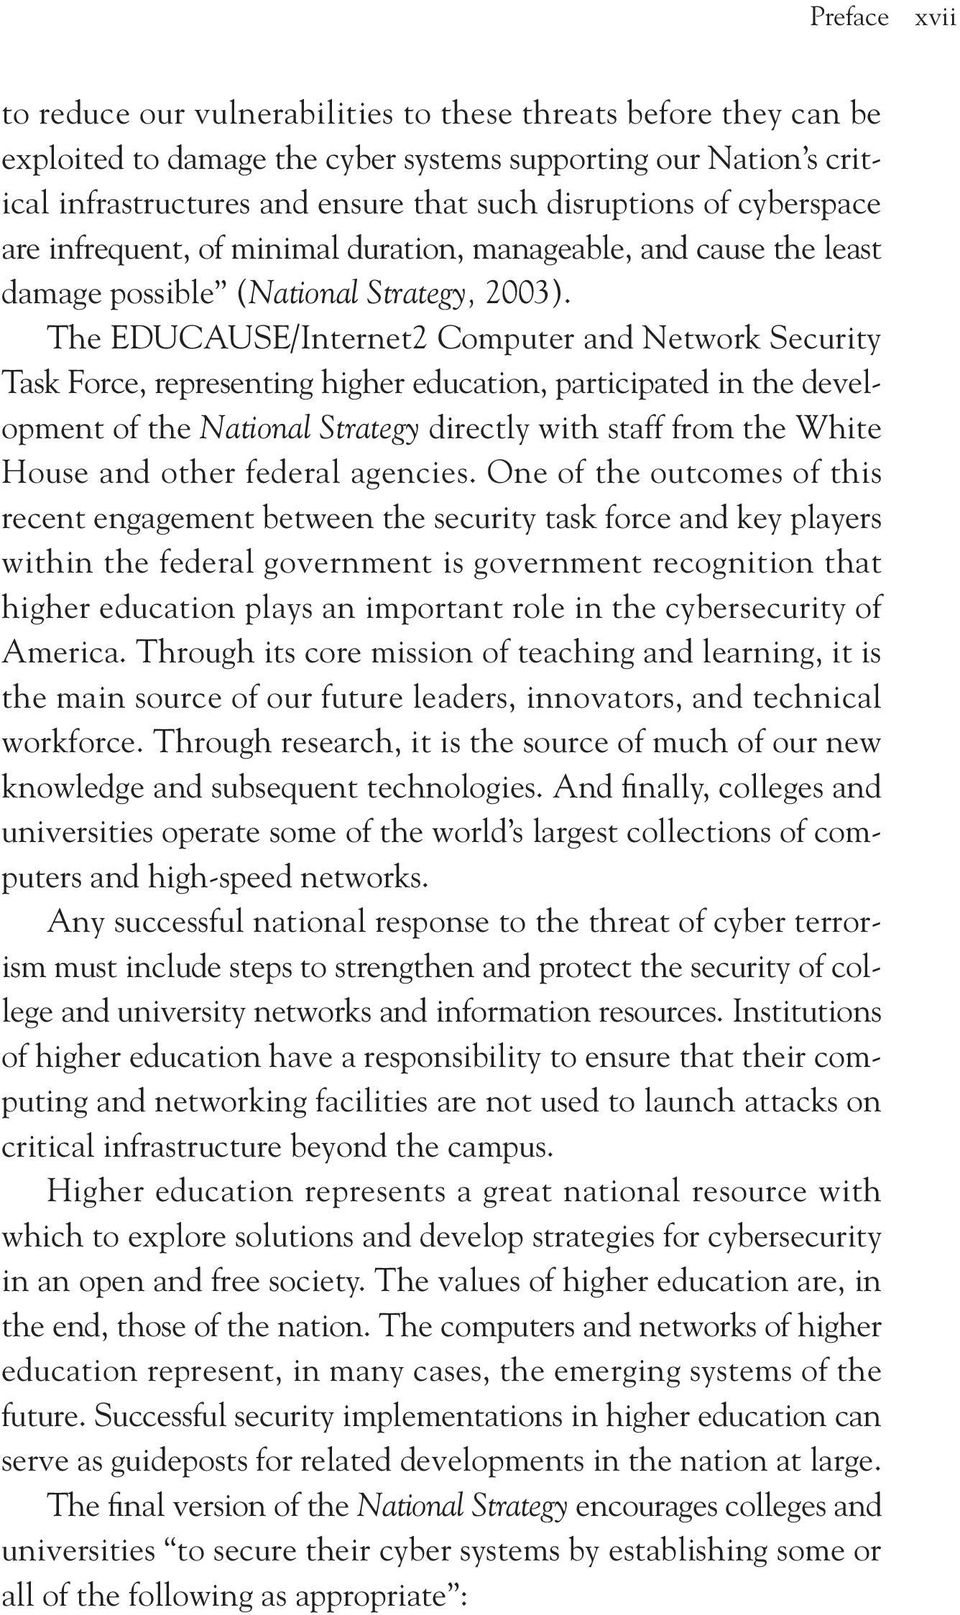 The EDUCAUSE/Internet2 Computer and Network Security Task Force, representing higher education, participated in the development of the National Strategy directly with staff from the White House and